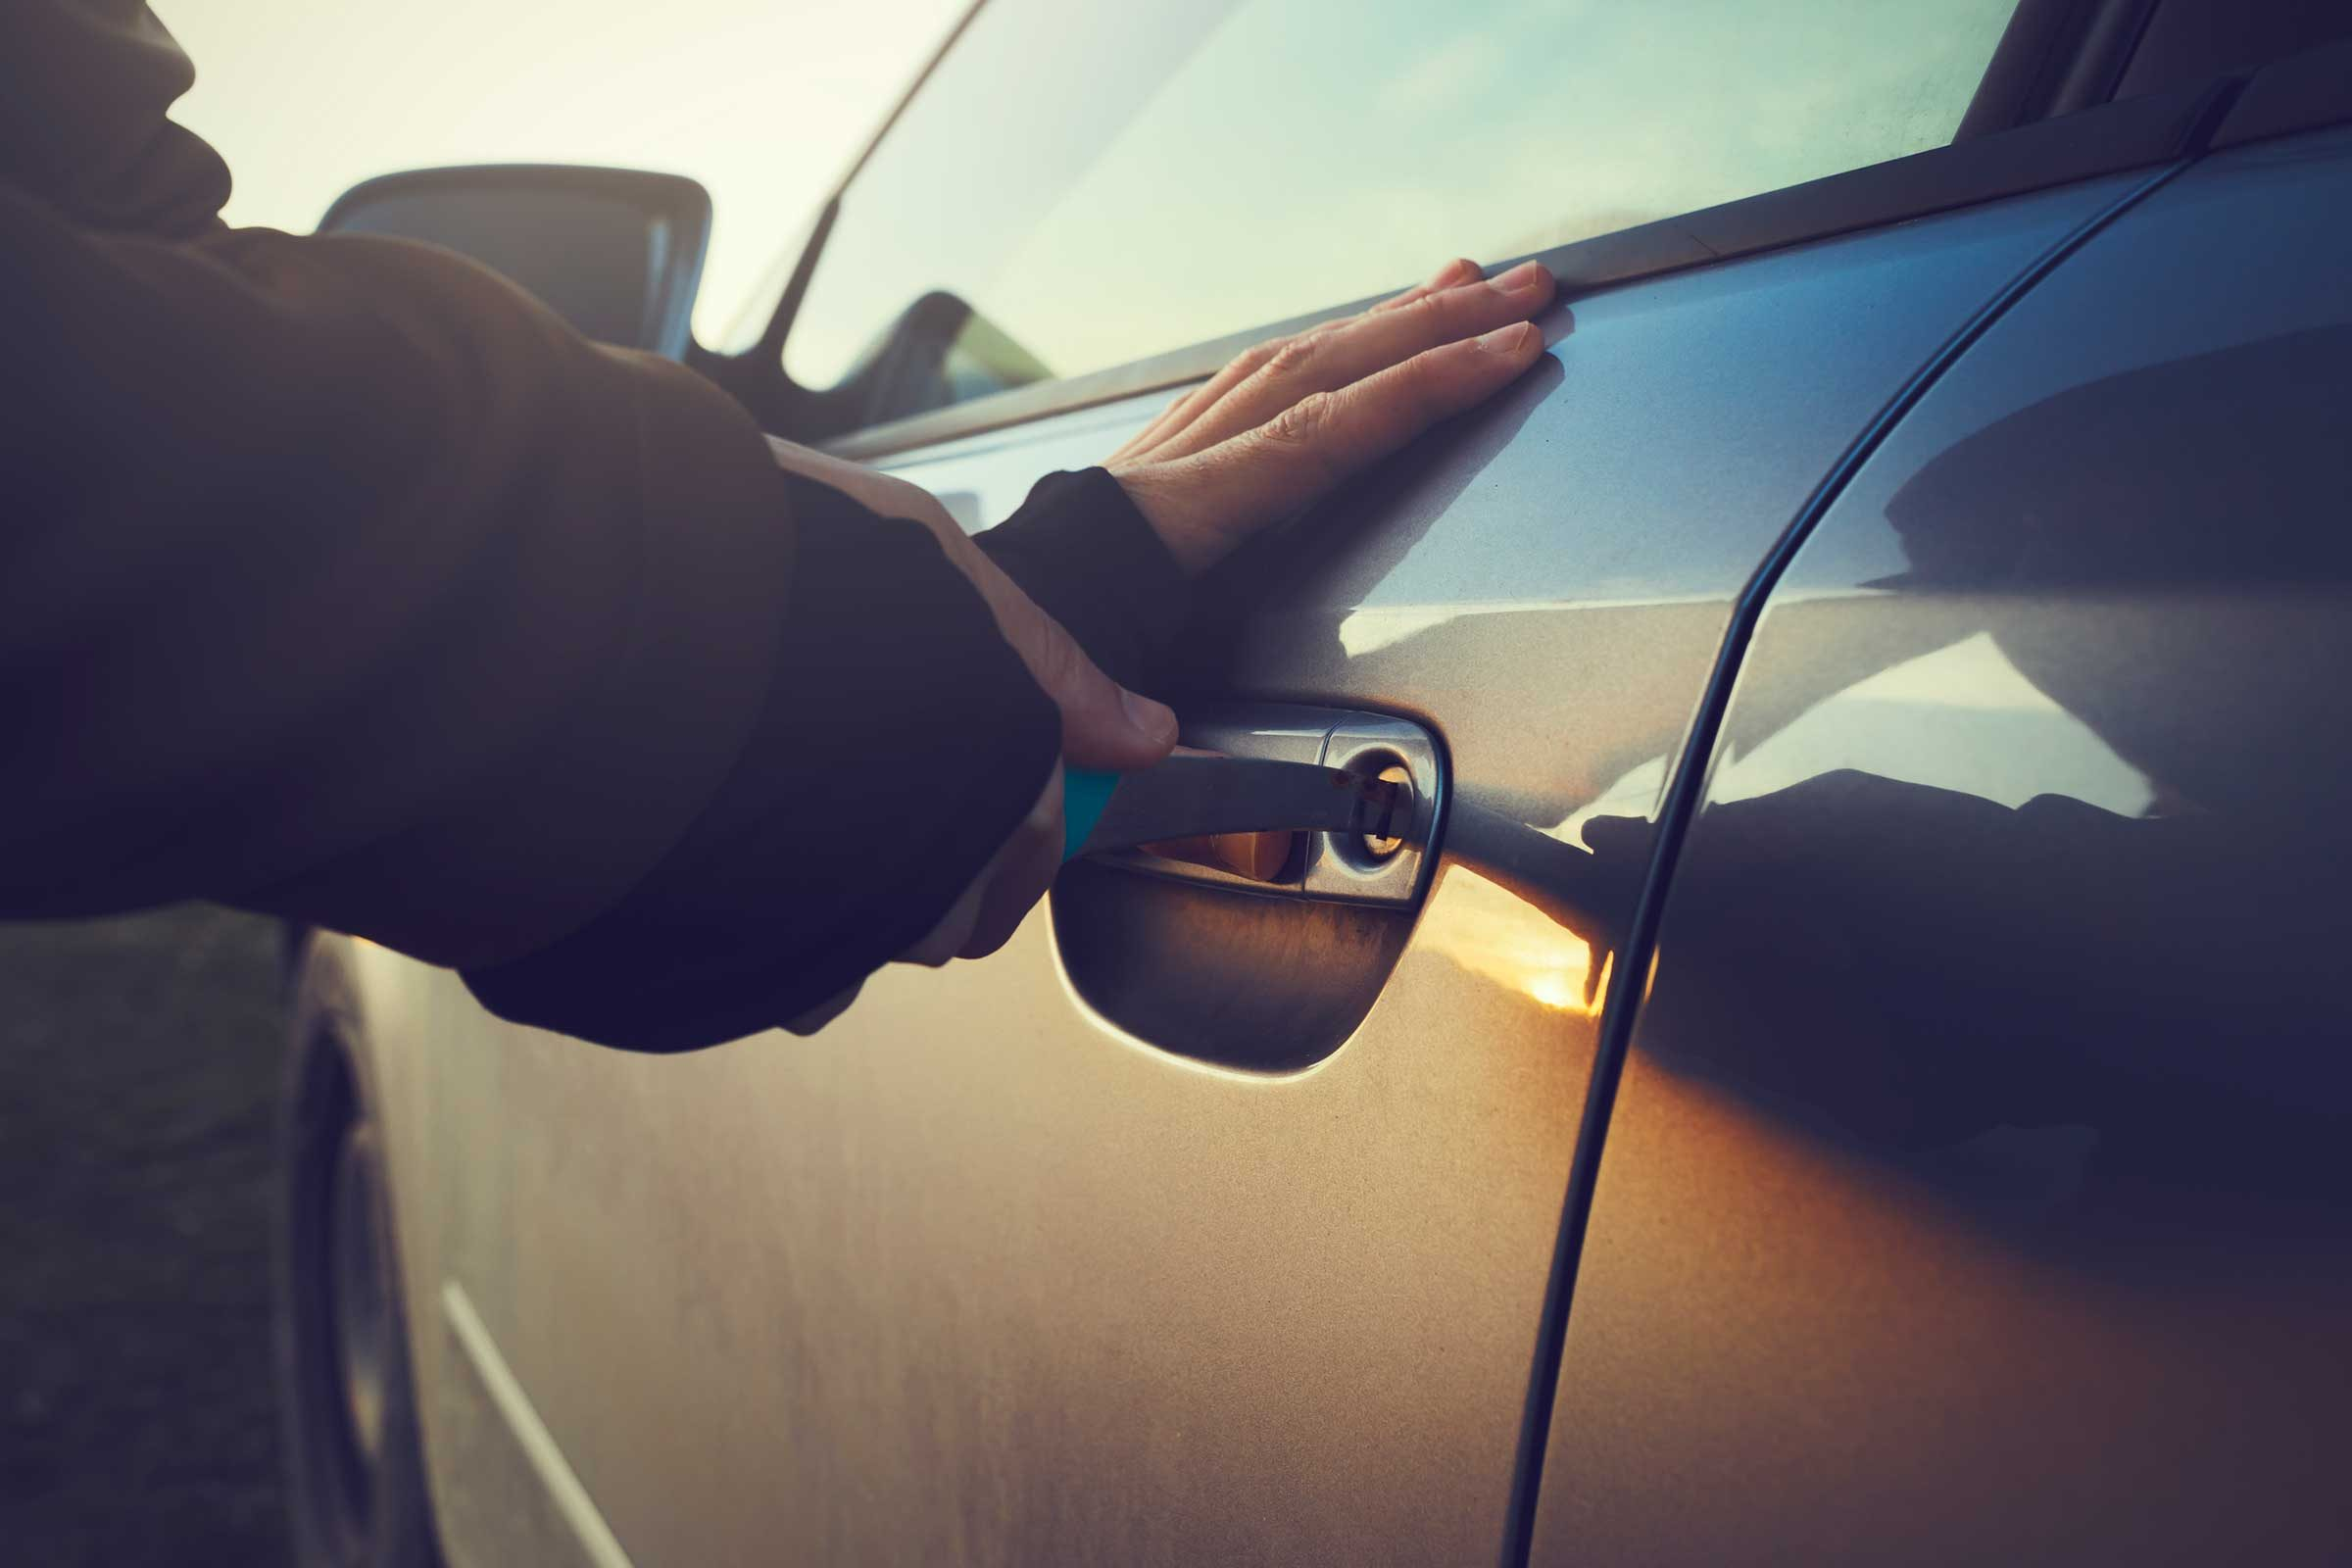 10 10 tips for car buying - Be Careful During Your Test Drive